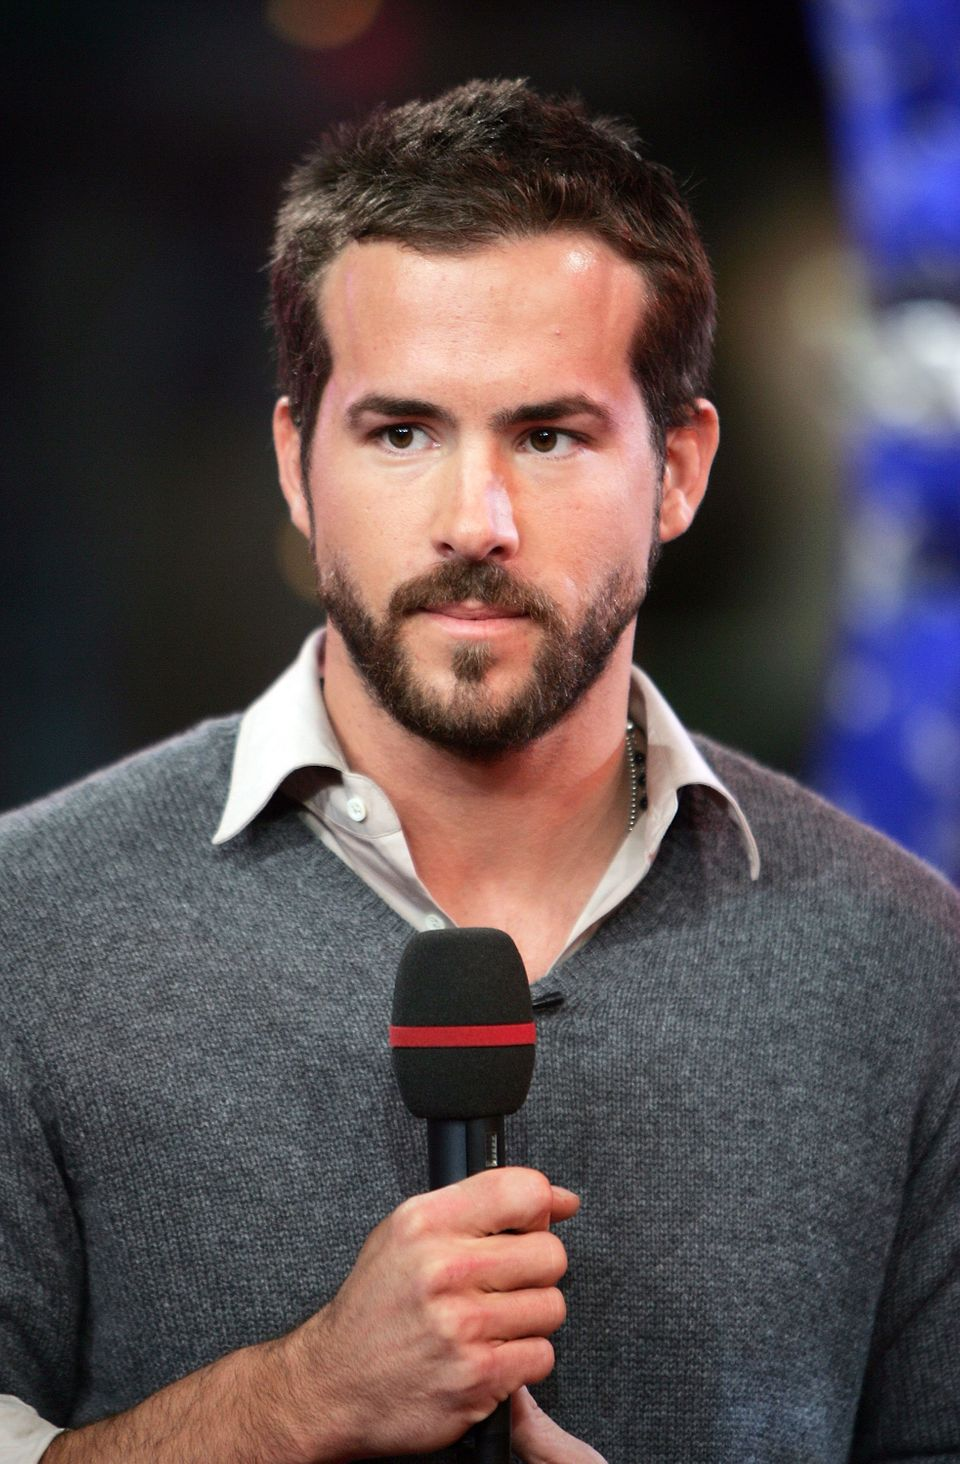 Are Men with Beards More Attractive - Isner Mile